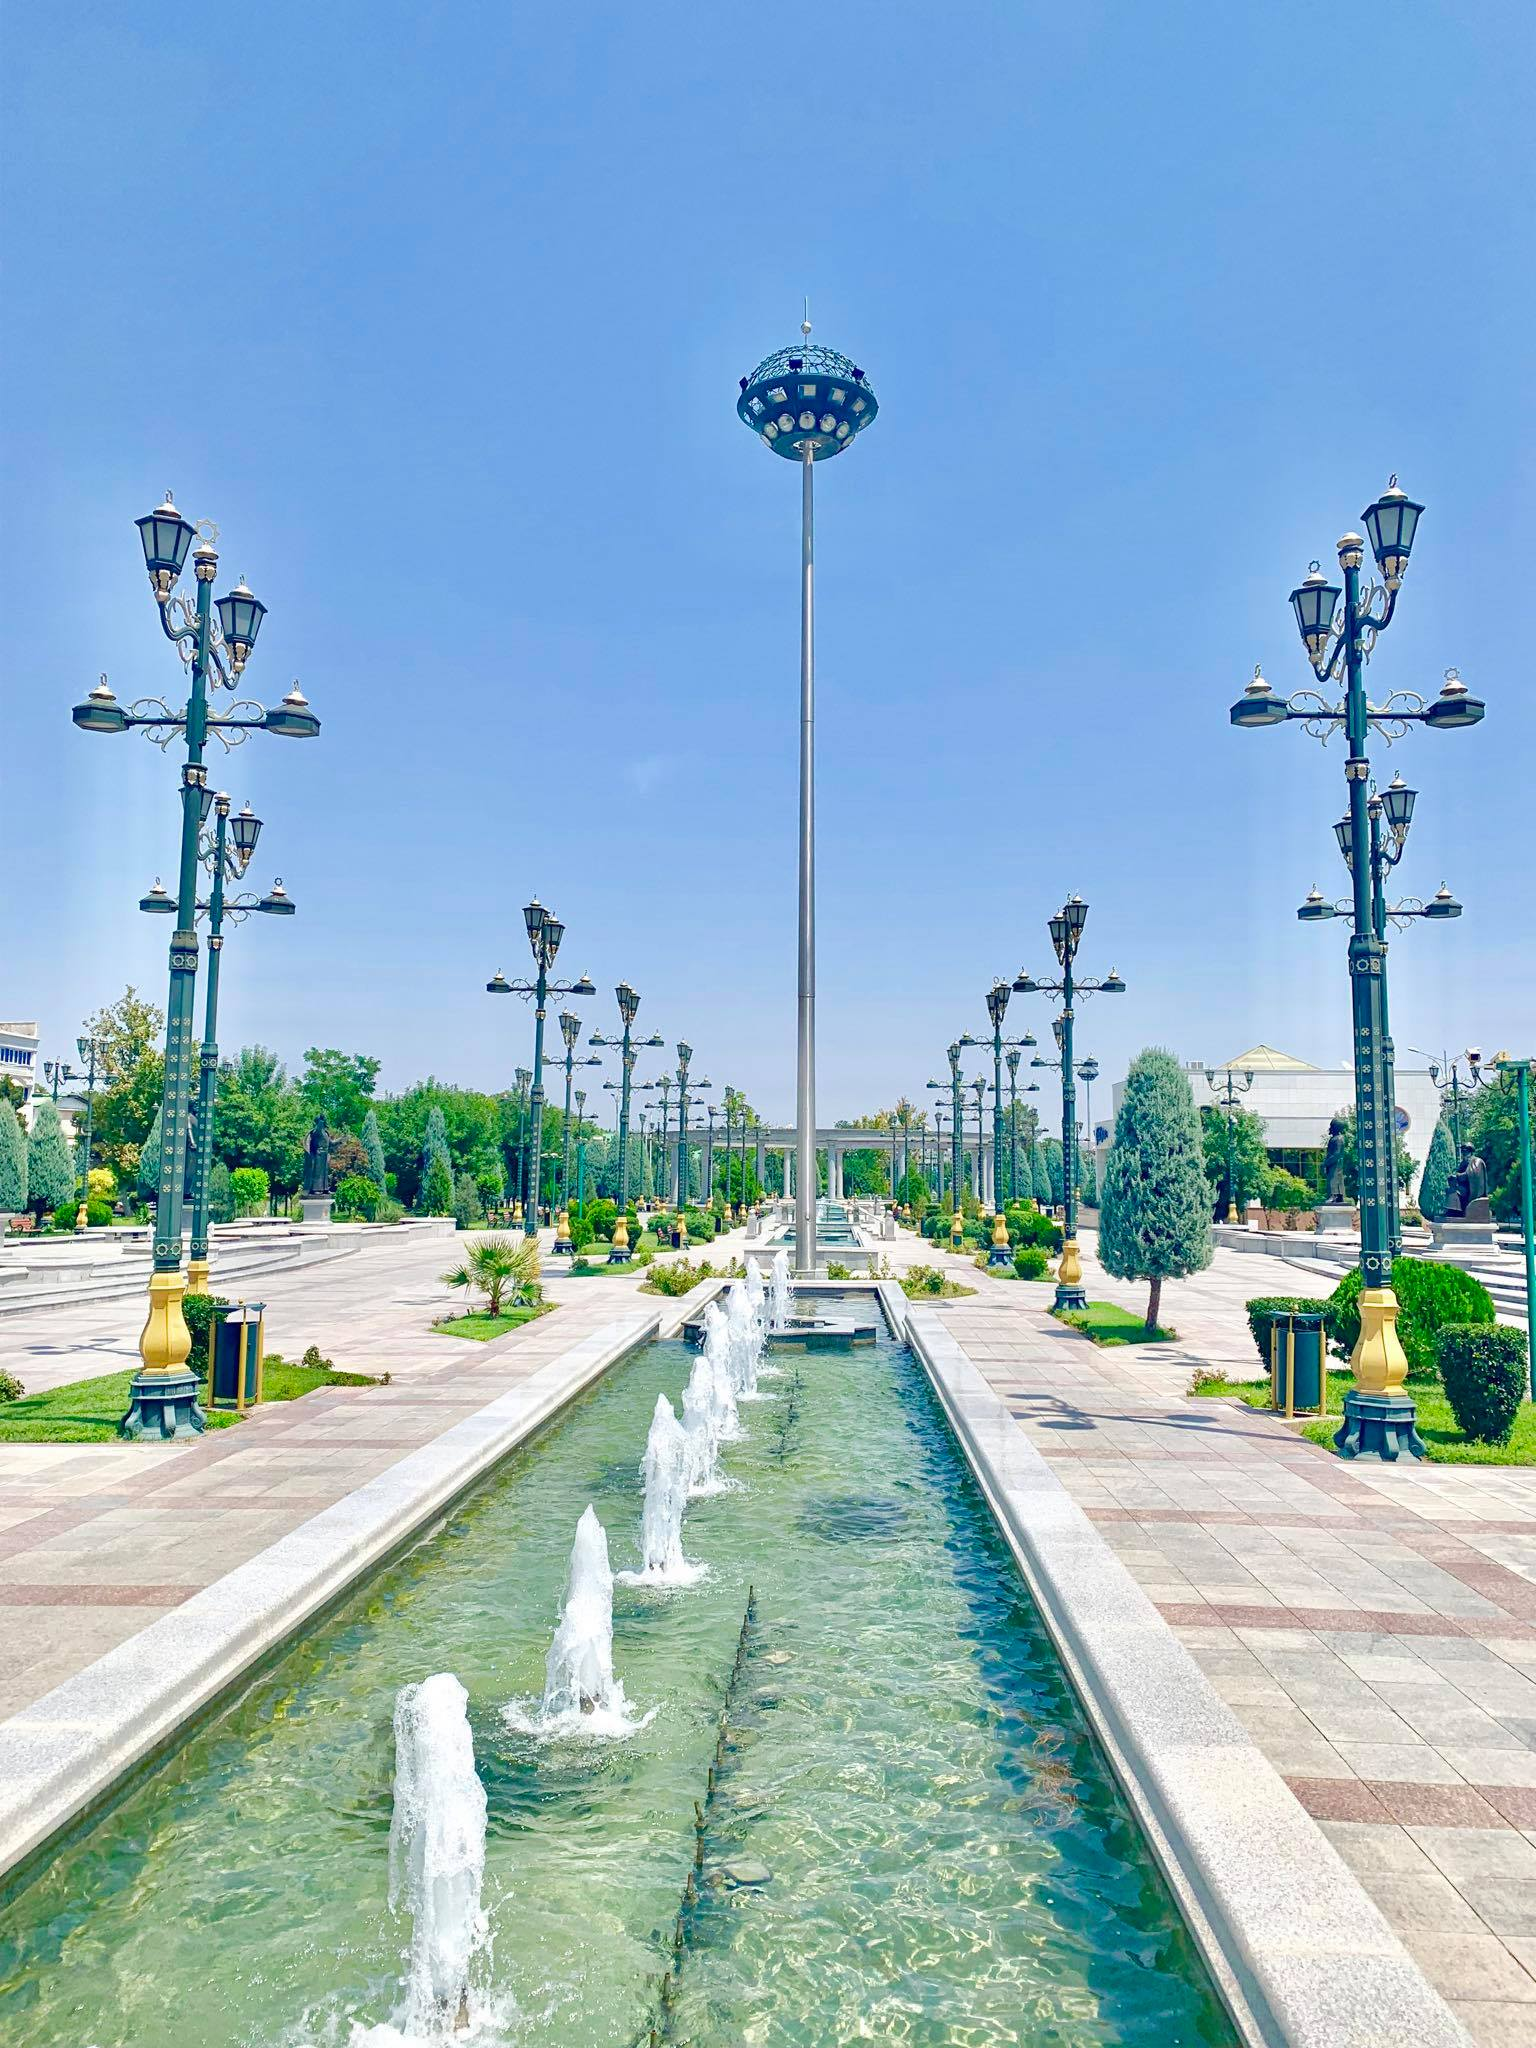 """Kach Solo Travels in 2019 Turkmenistan - the most """"unique"""" country I've visited in Central Asia11.jpg"""